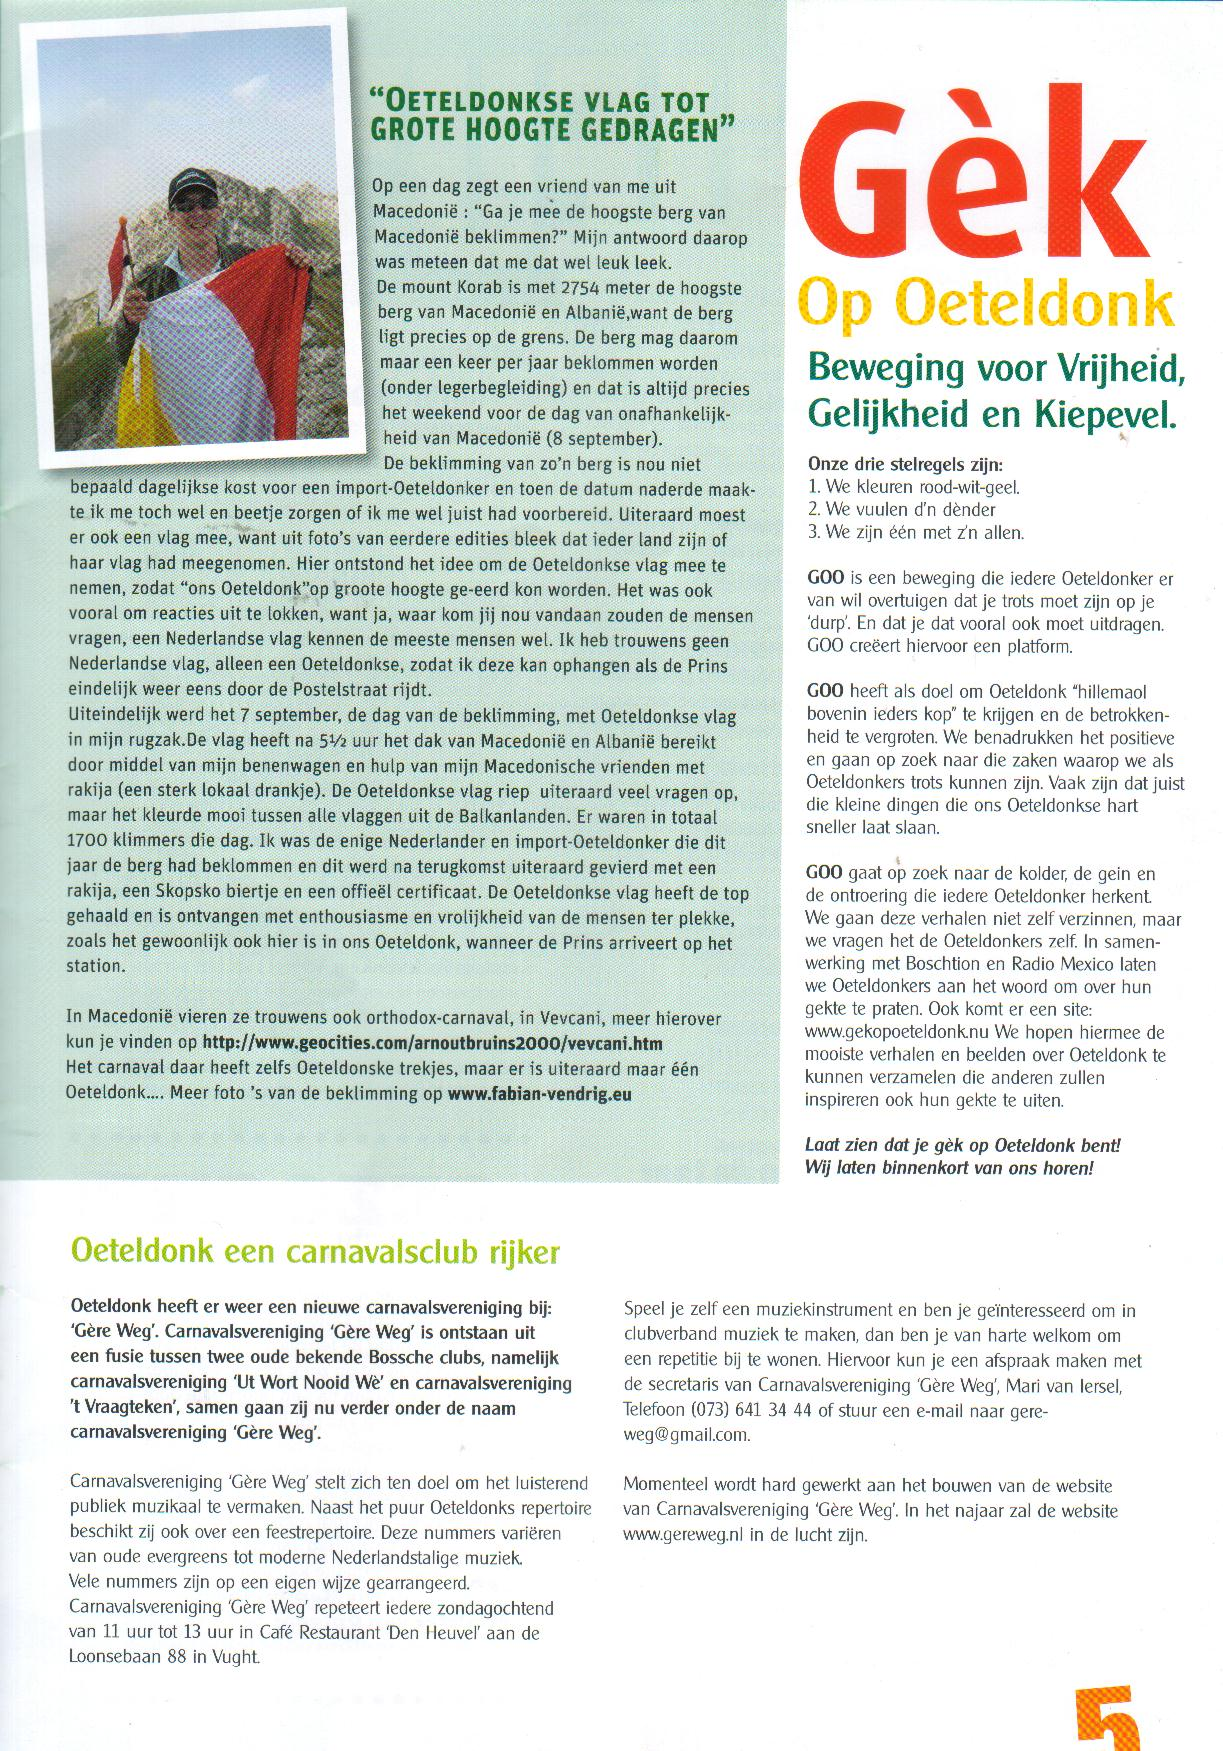 30/11/2008:Blurb,the official carnival magazine of Oeteldonk.